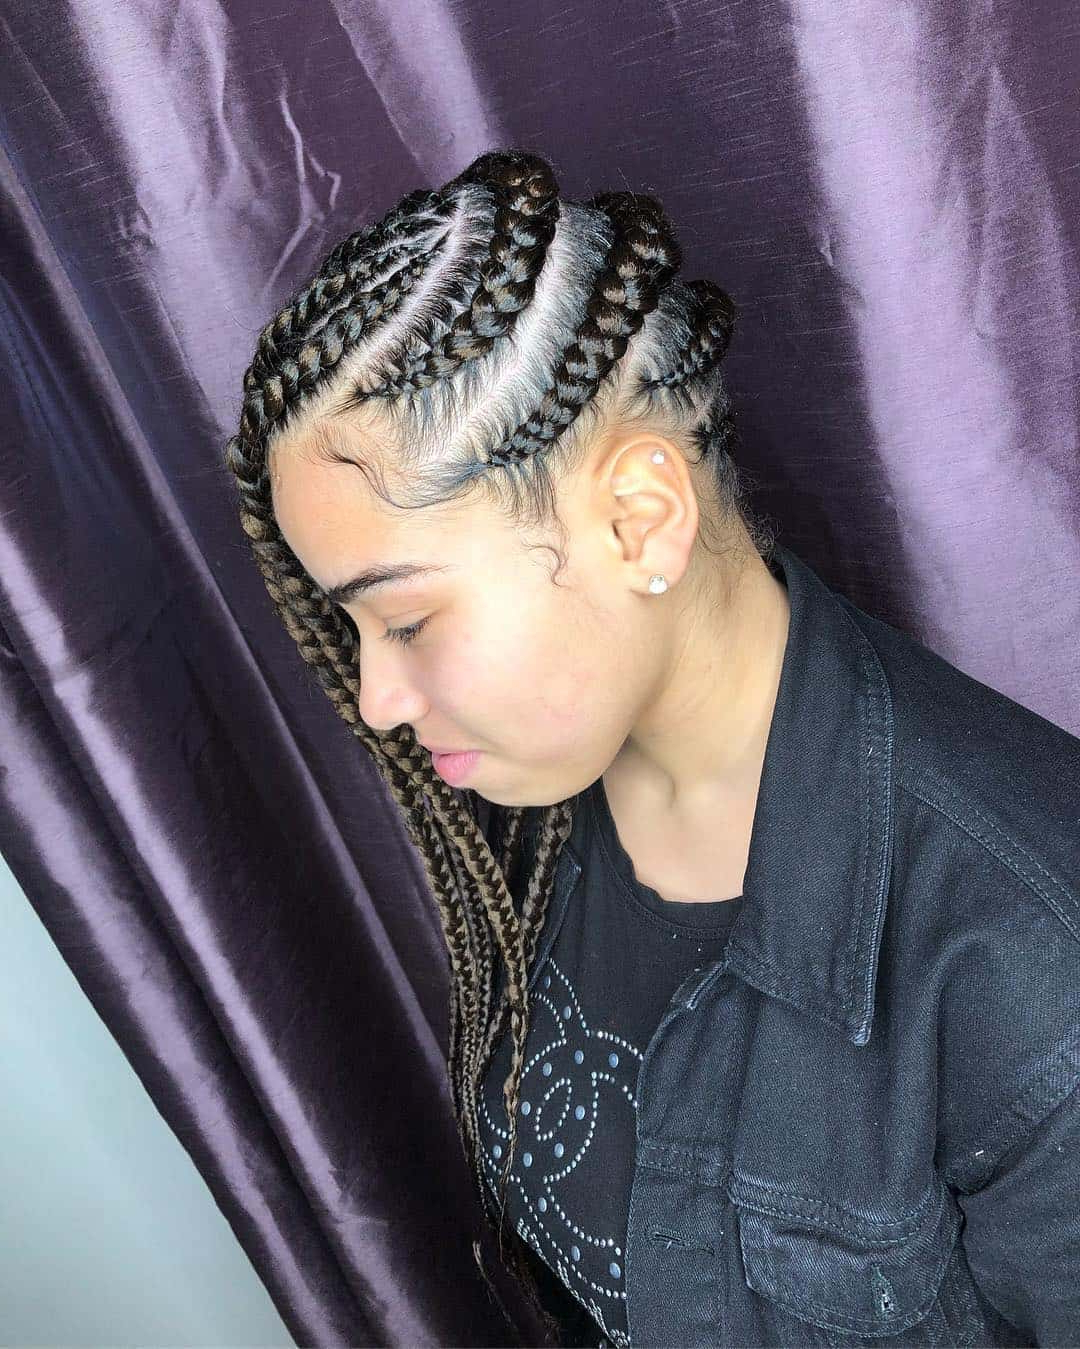 Well Known Lemon Tinted Lemonade Braided Hairstyles Regarding 27 Lovely Lemonade Braids To Refresh Your Look – Wild About (View 20 of 20)